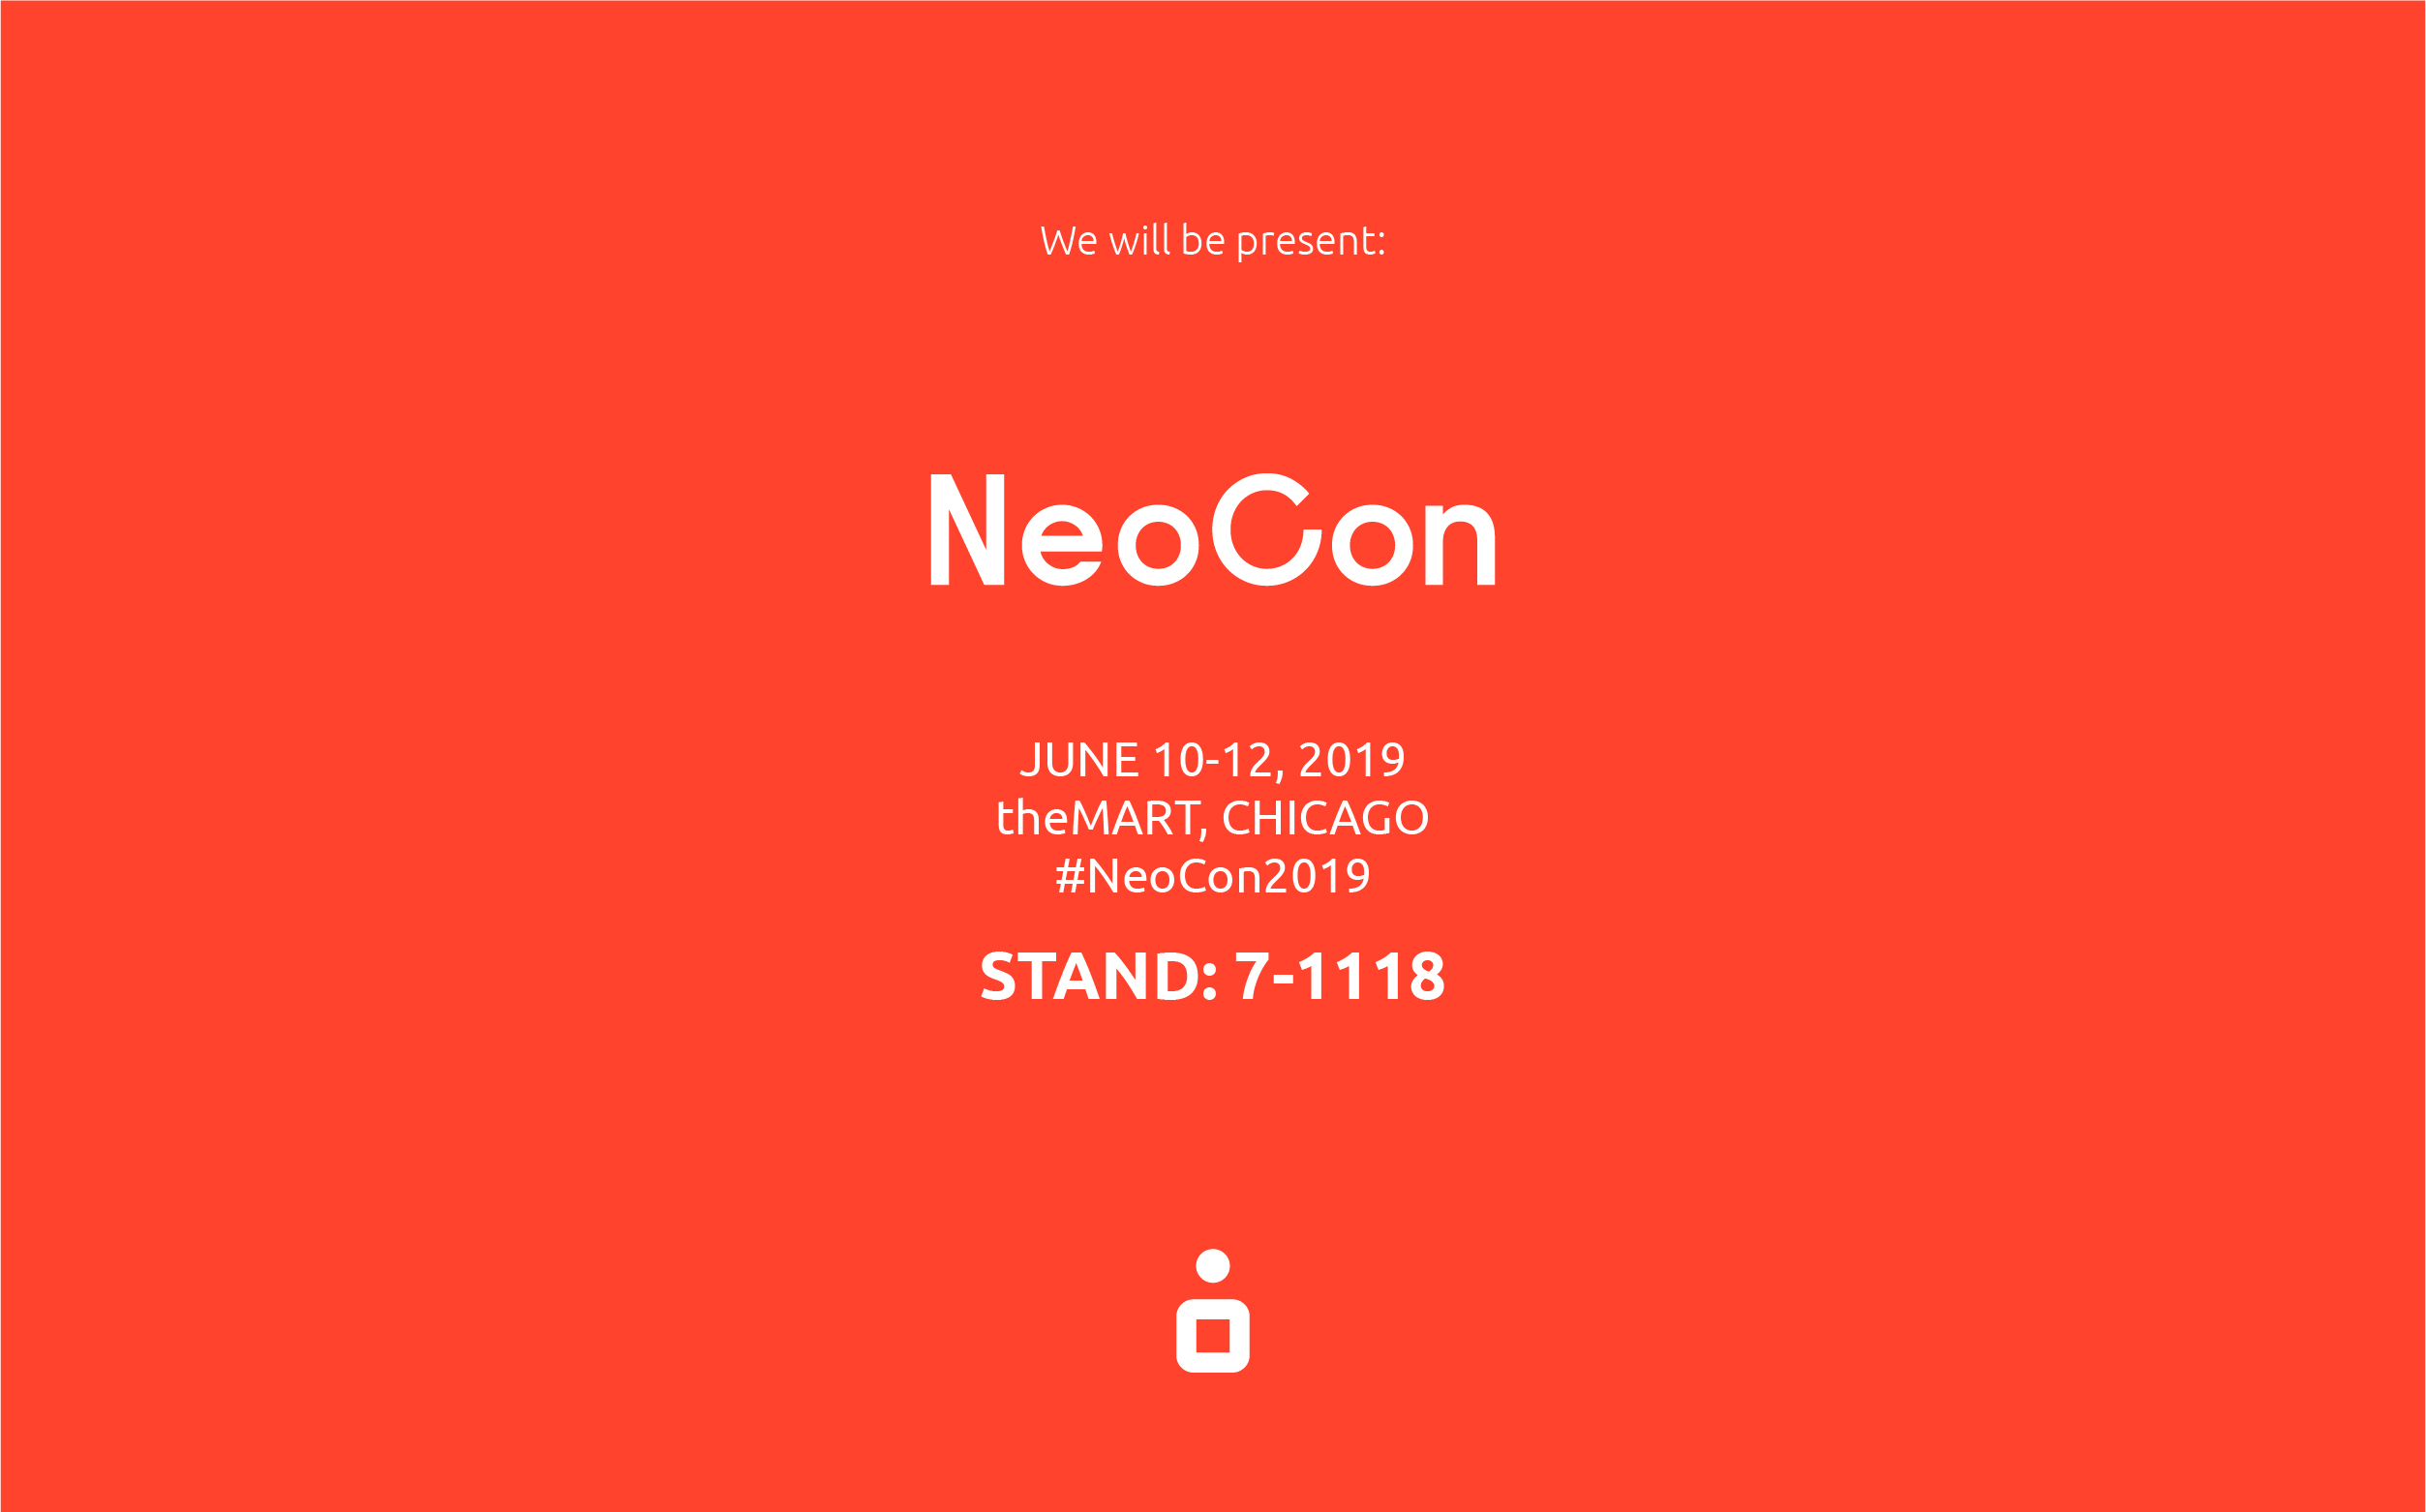 neocon-2019-1012-giugno-save-the-date